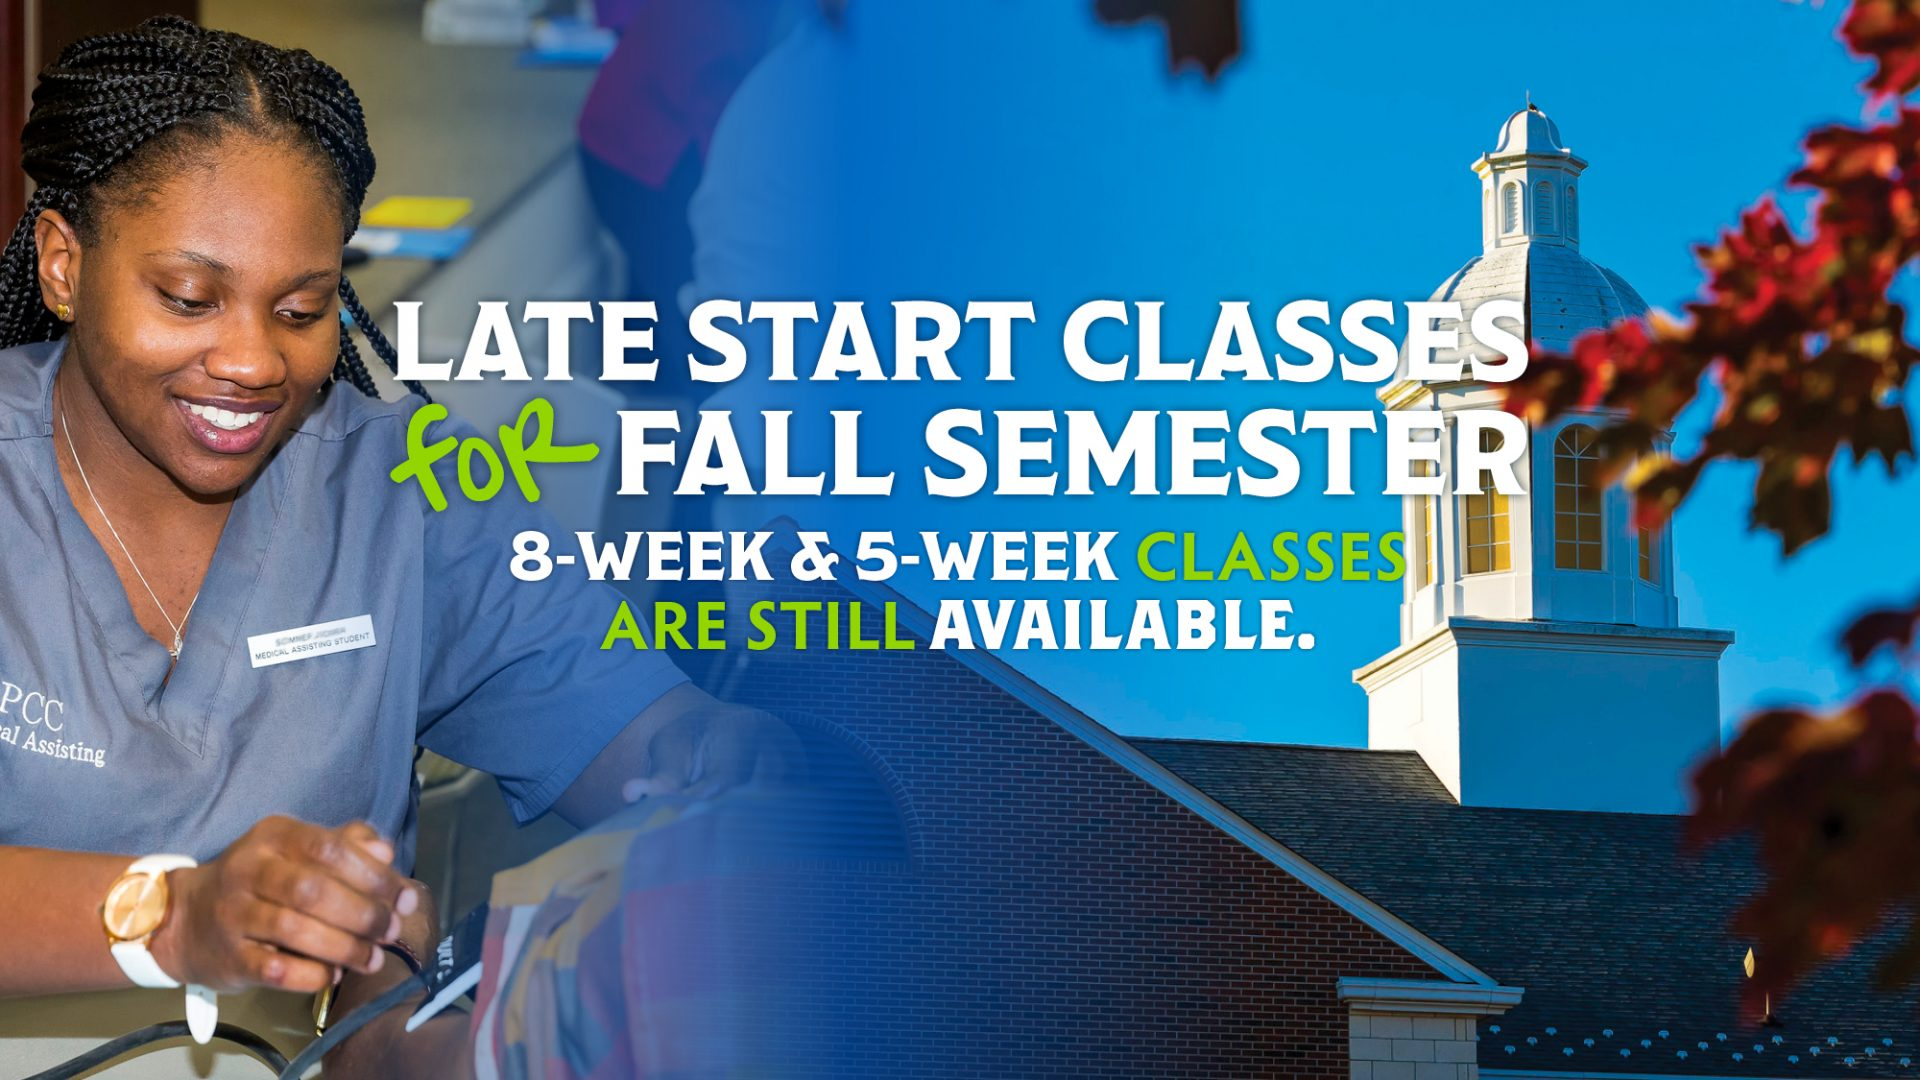 Graphic announcing 2020 Fall Semester late-start classes.